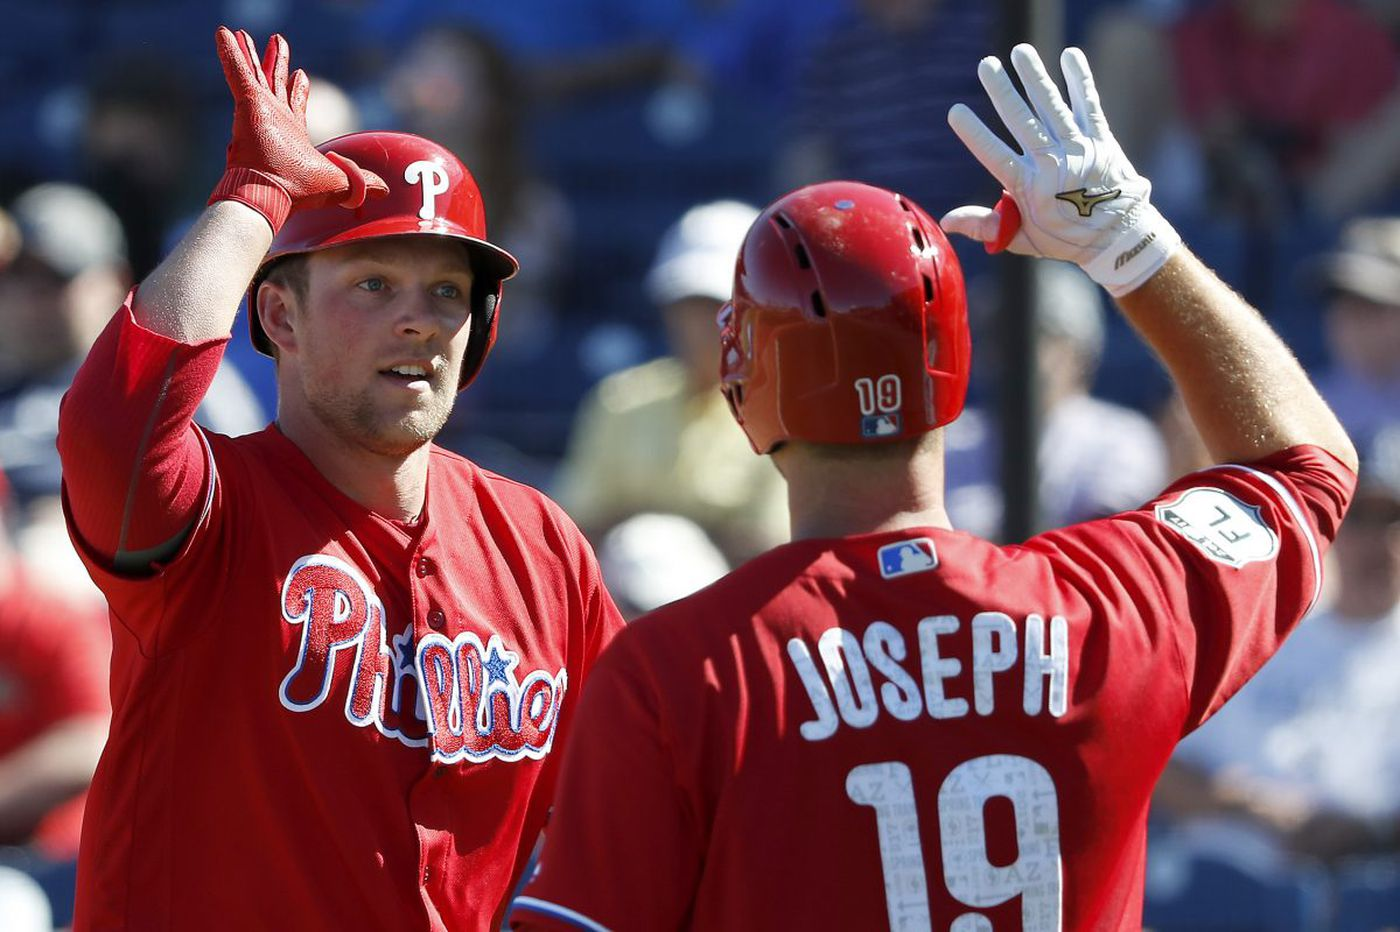 Phillies' Mackanin: Hoskins, Joseph 'can't coexist on the same team'